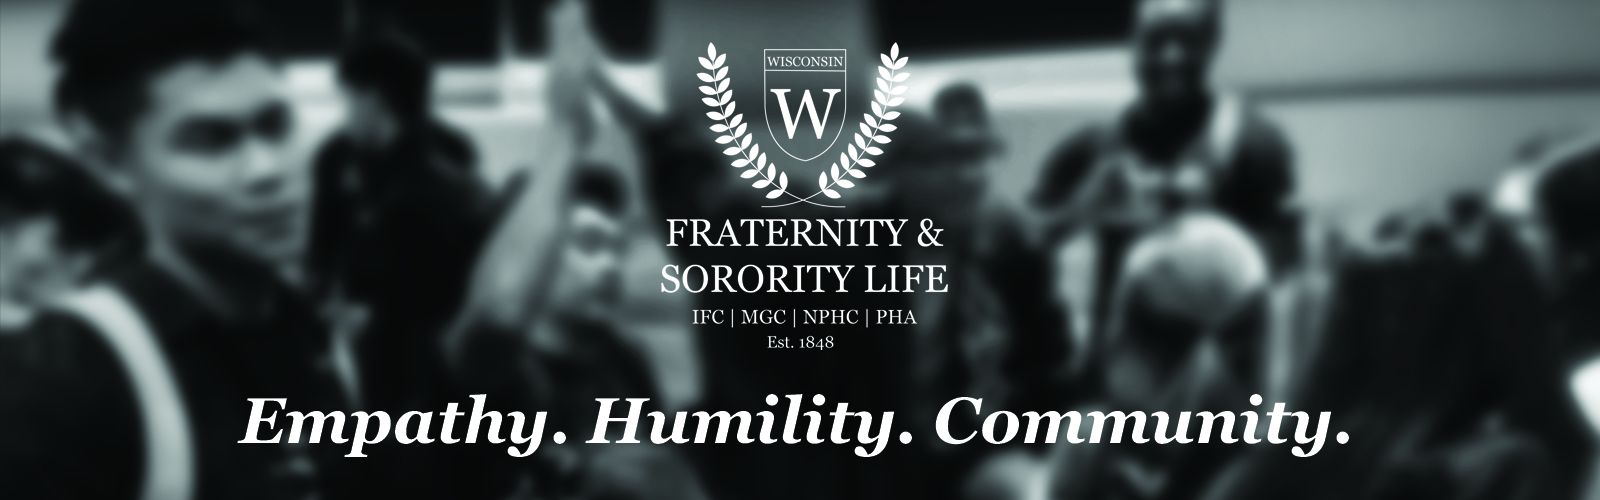 "black and white photo of students socializing with the Fraternity & Sorority Life logo at the top and ""empathy. humility. community."" at the bottom."